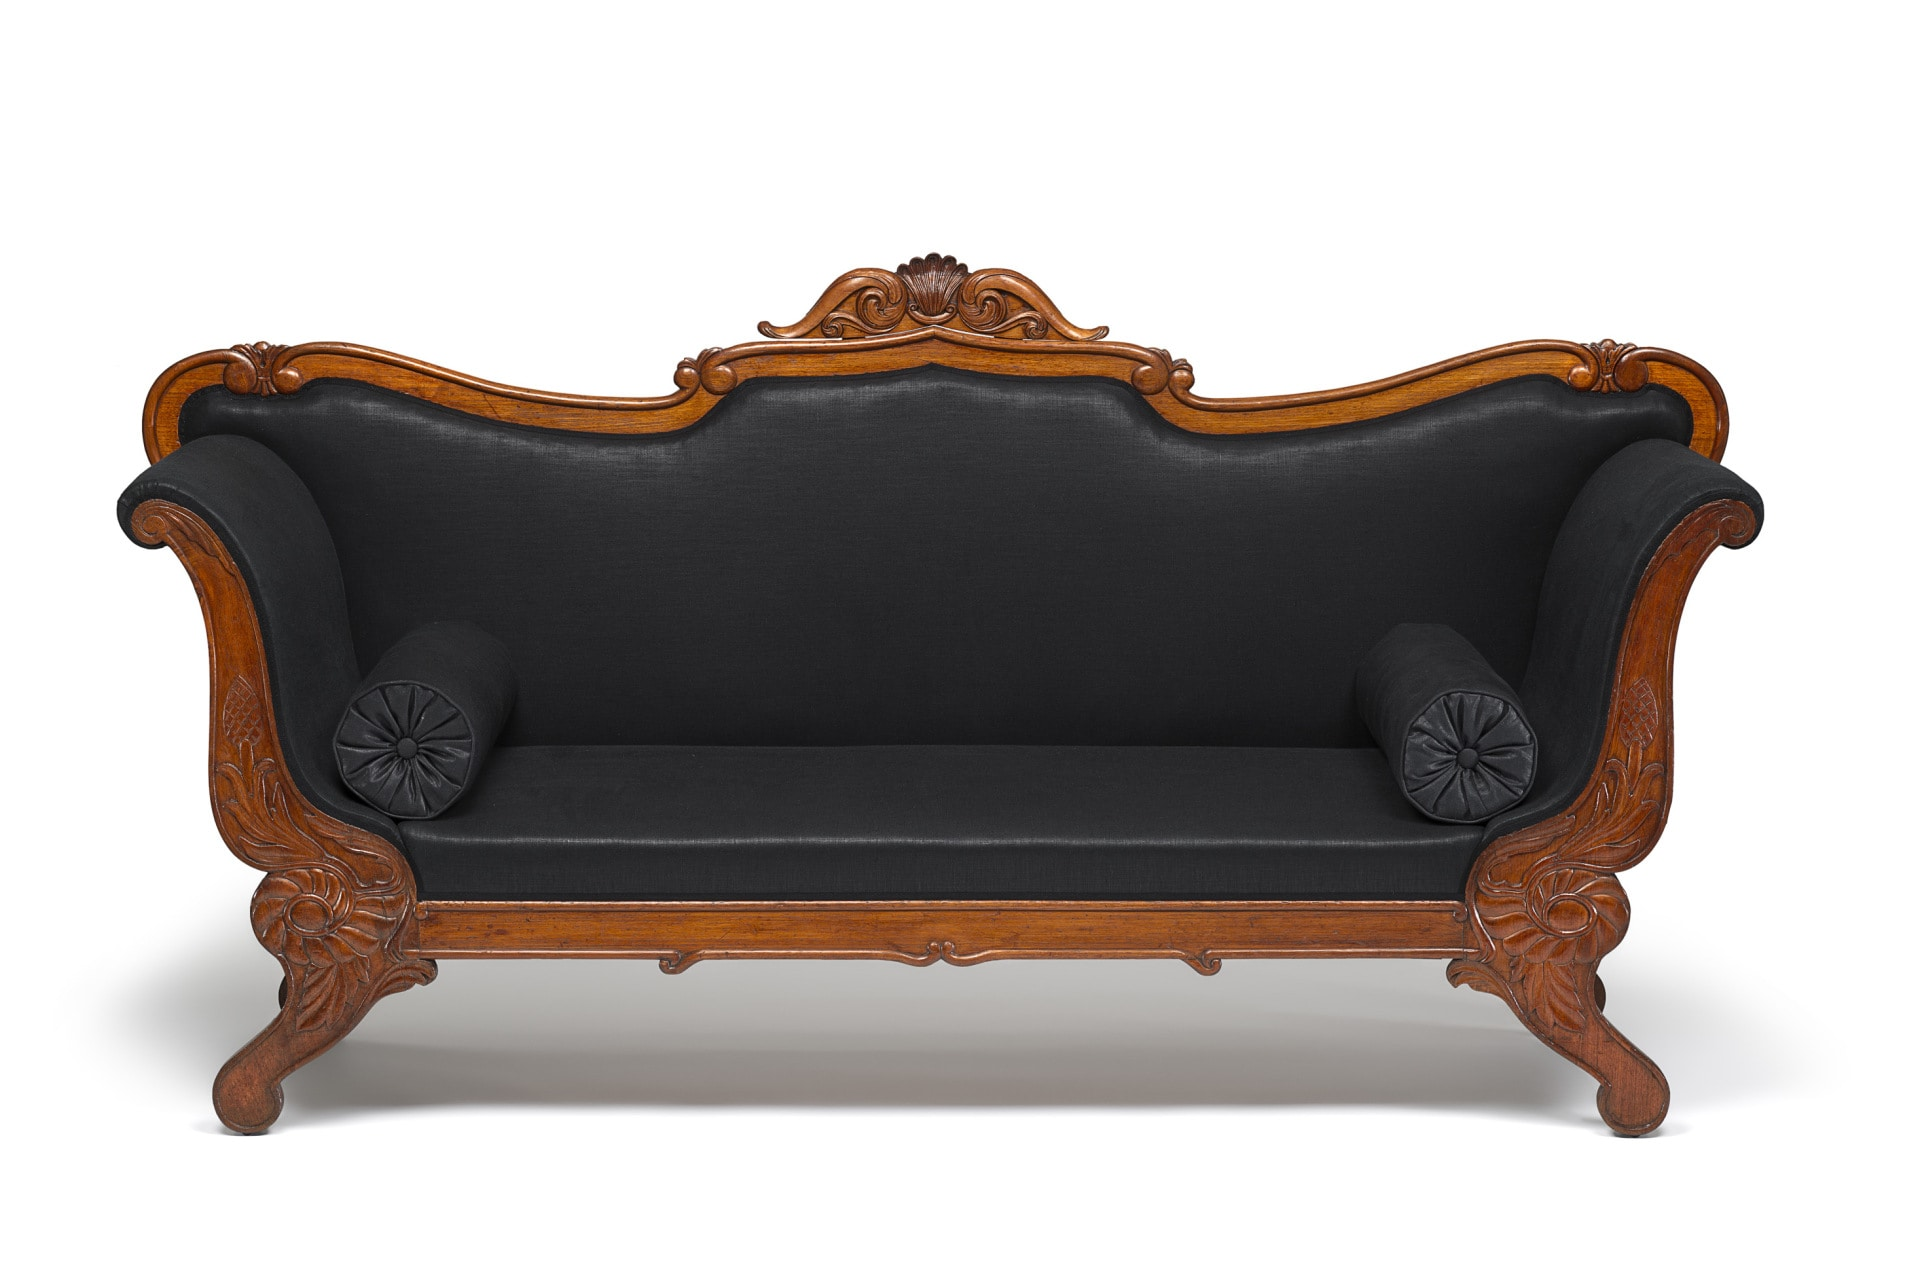 Image credit: Sofa, 1840s, Red Cedar (Toona ciliata), upholstery, (other materials) National Gallery of Victoria, Melbourne Gift of Michael and Traudl Moon, 1996.